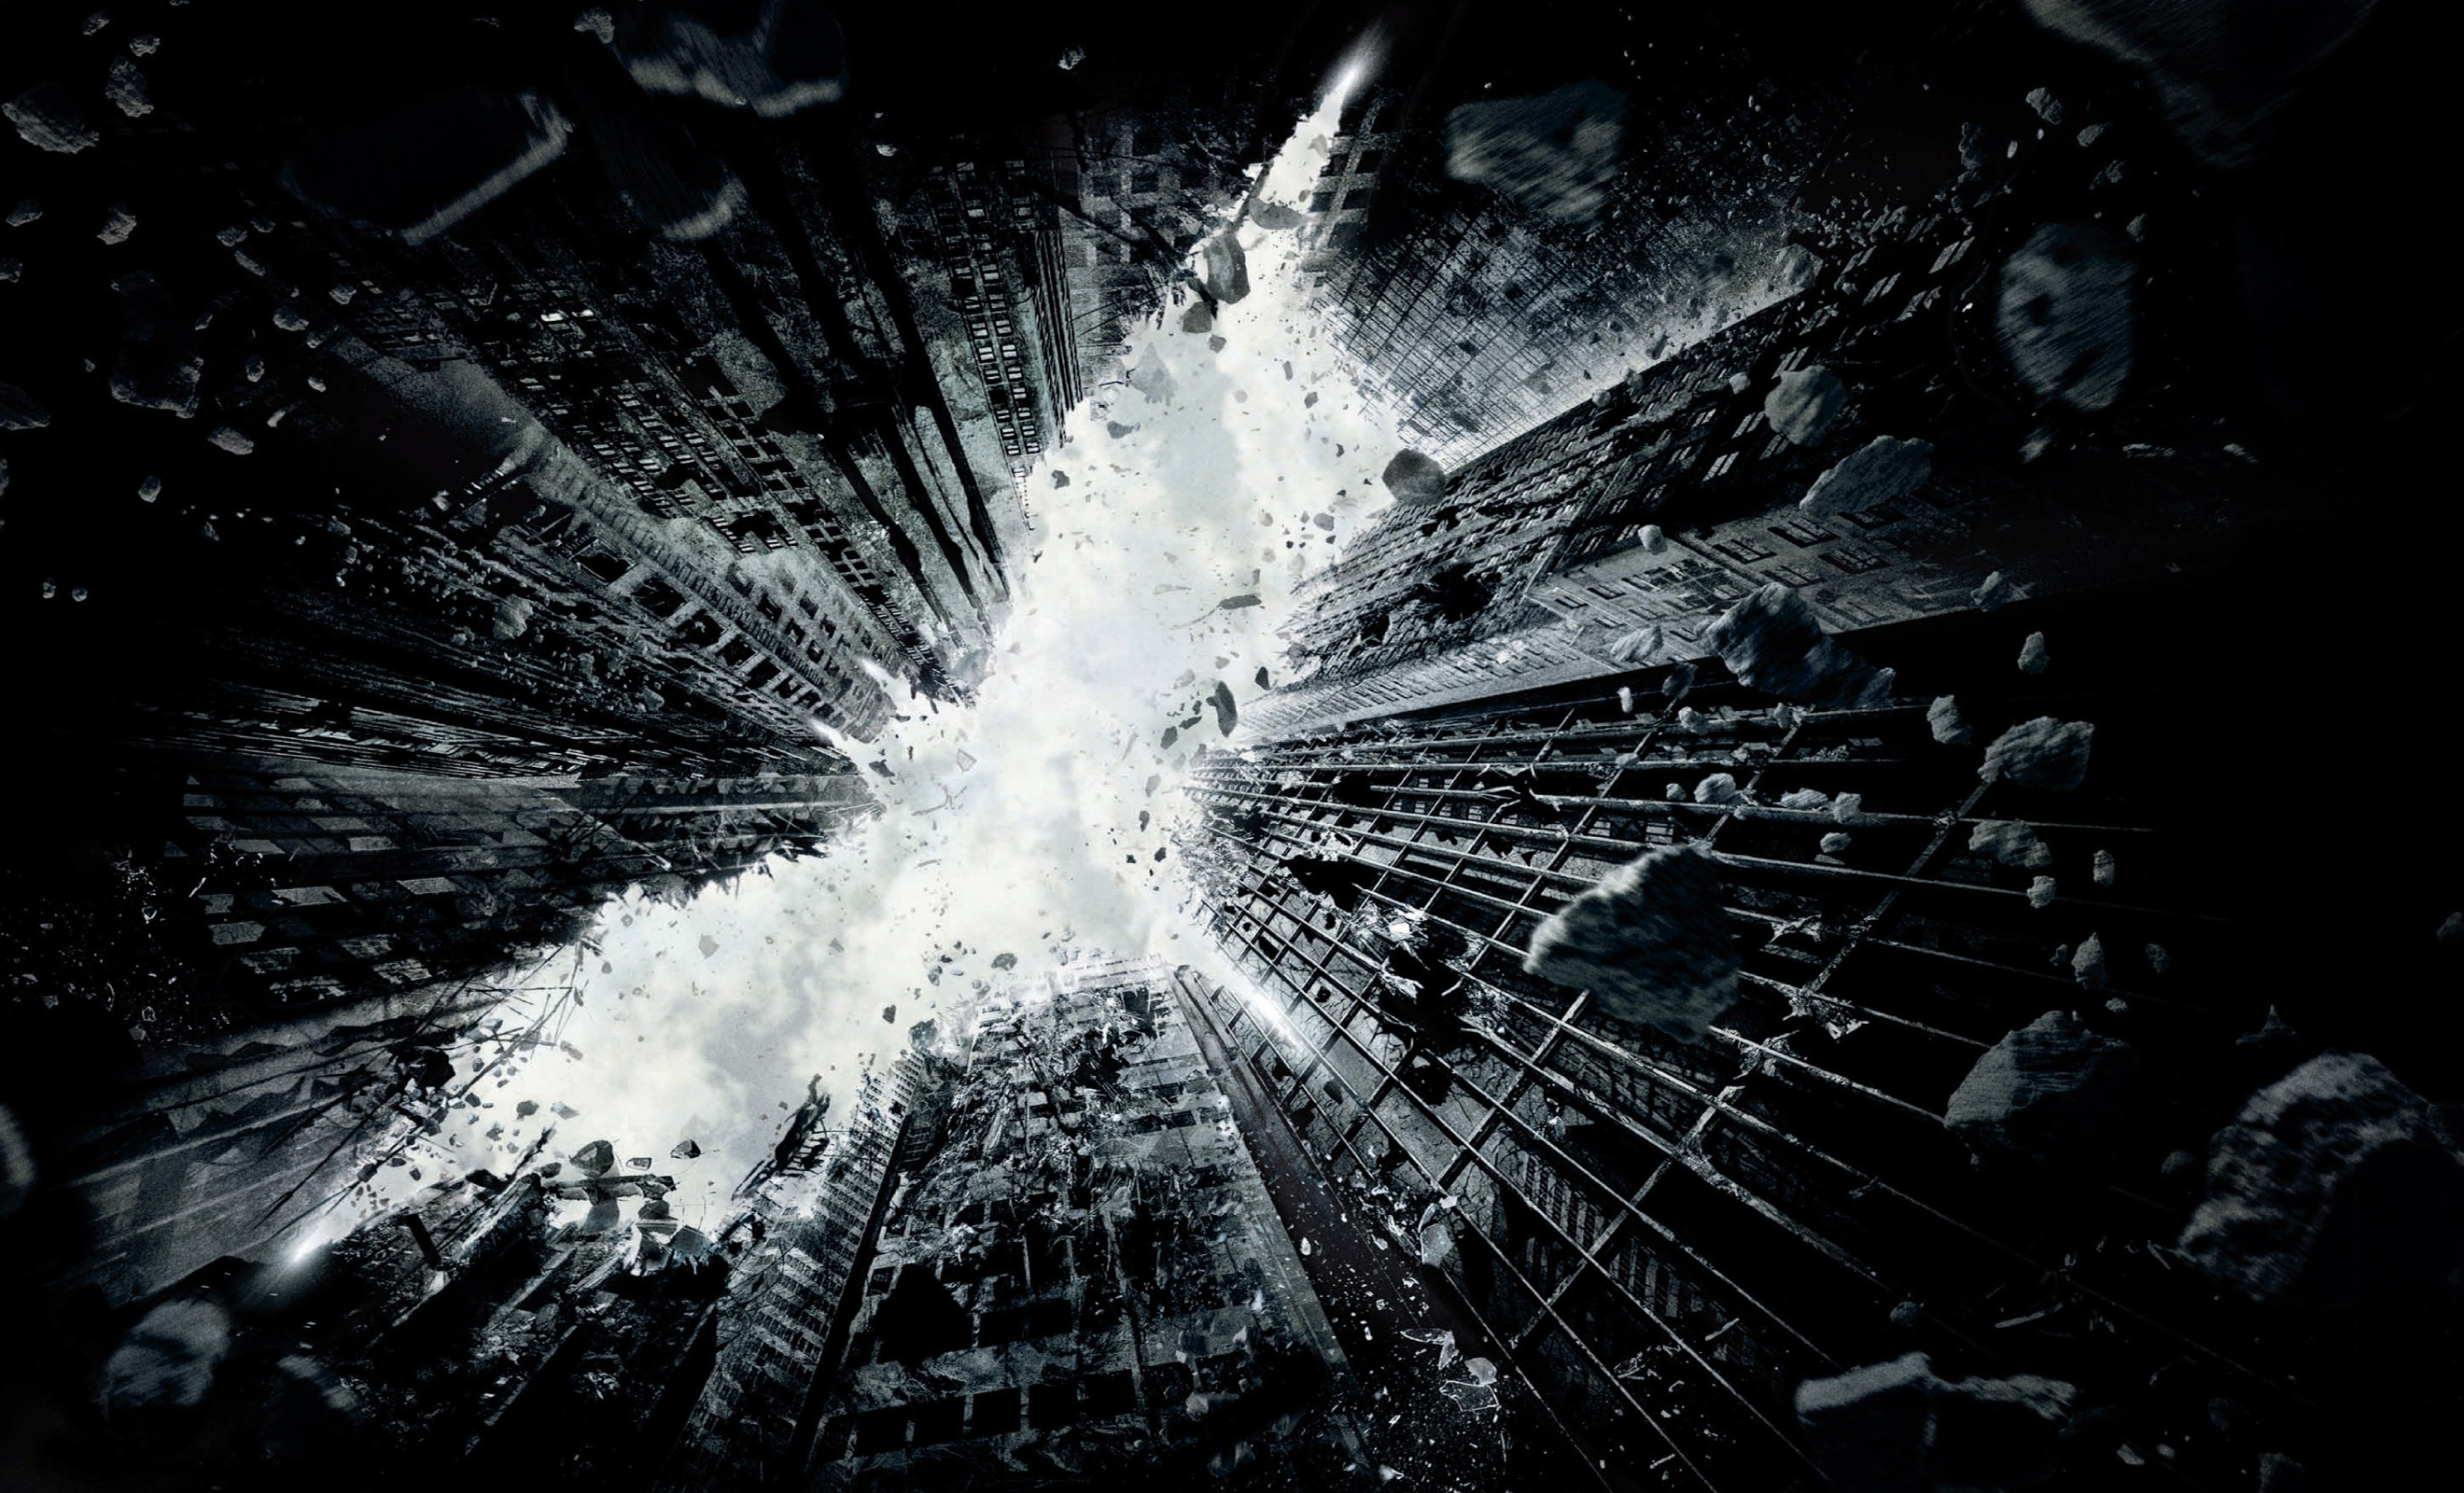 The Dark Knight Rises First Wallpaper Poster   Movie Wallpapers 2640x1600